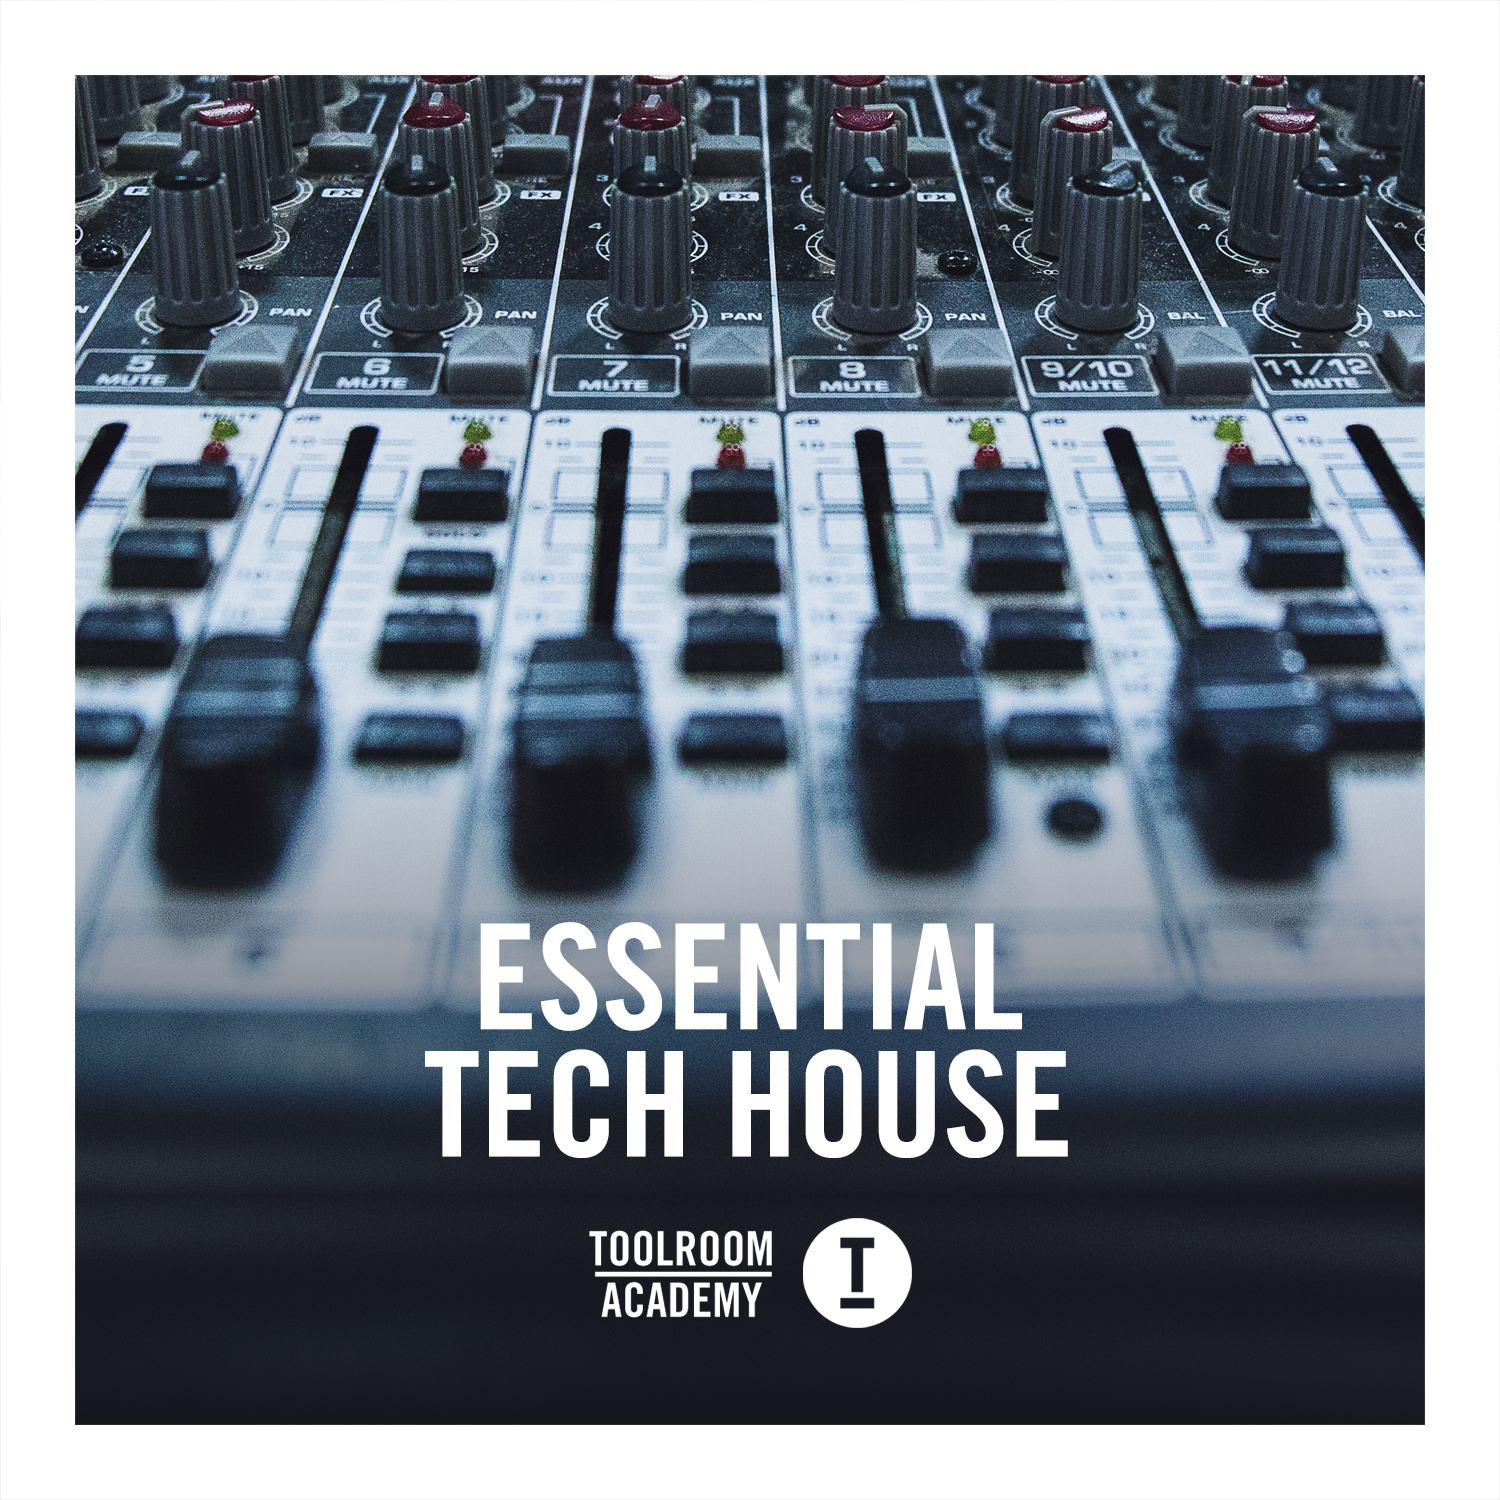 Toolroom Academy  Essential Tech House.